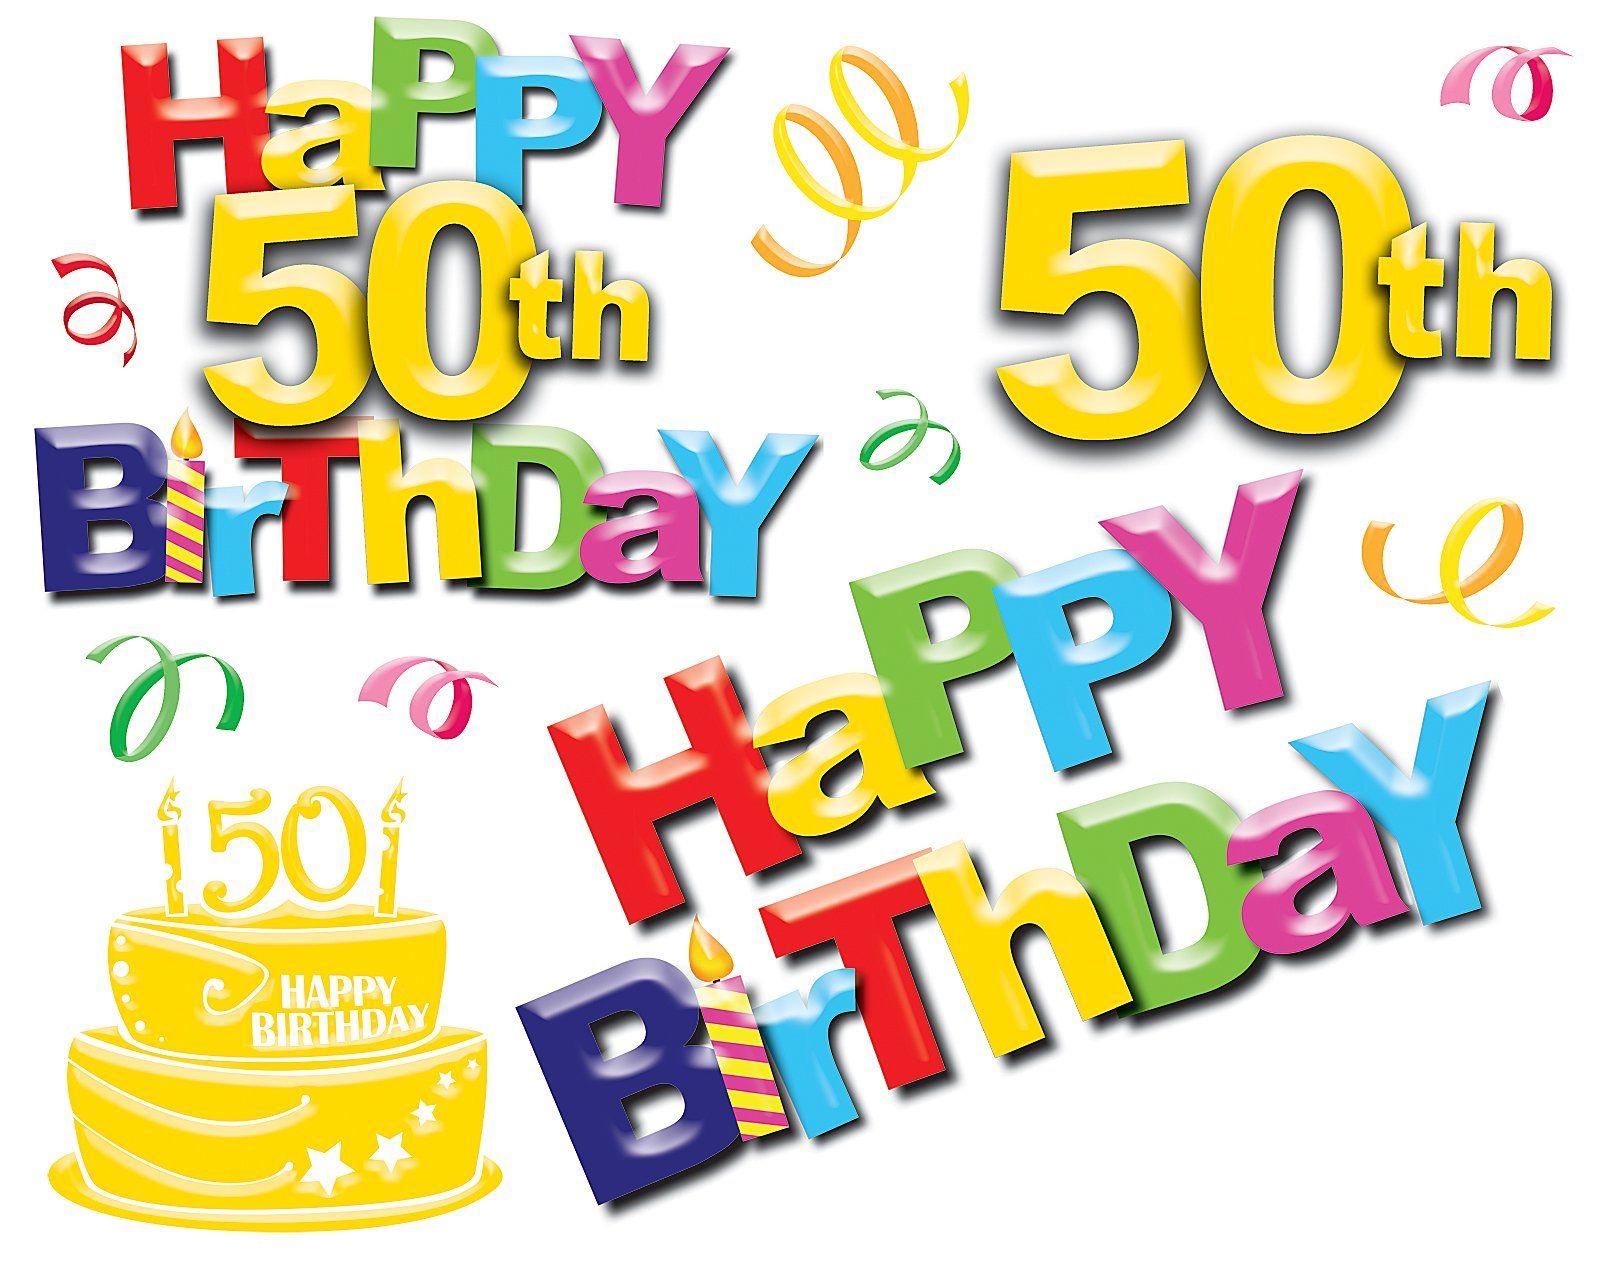 happy 50th birthday messages – 50th Birthday Greetings Messages